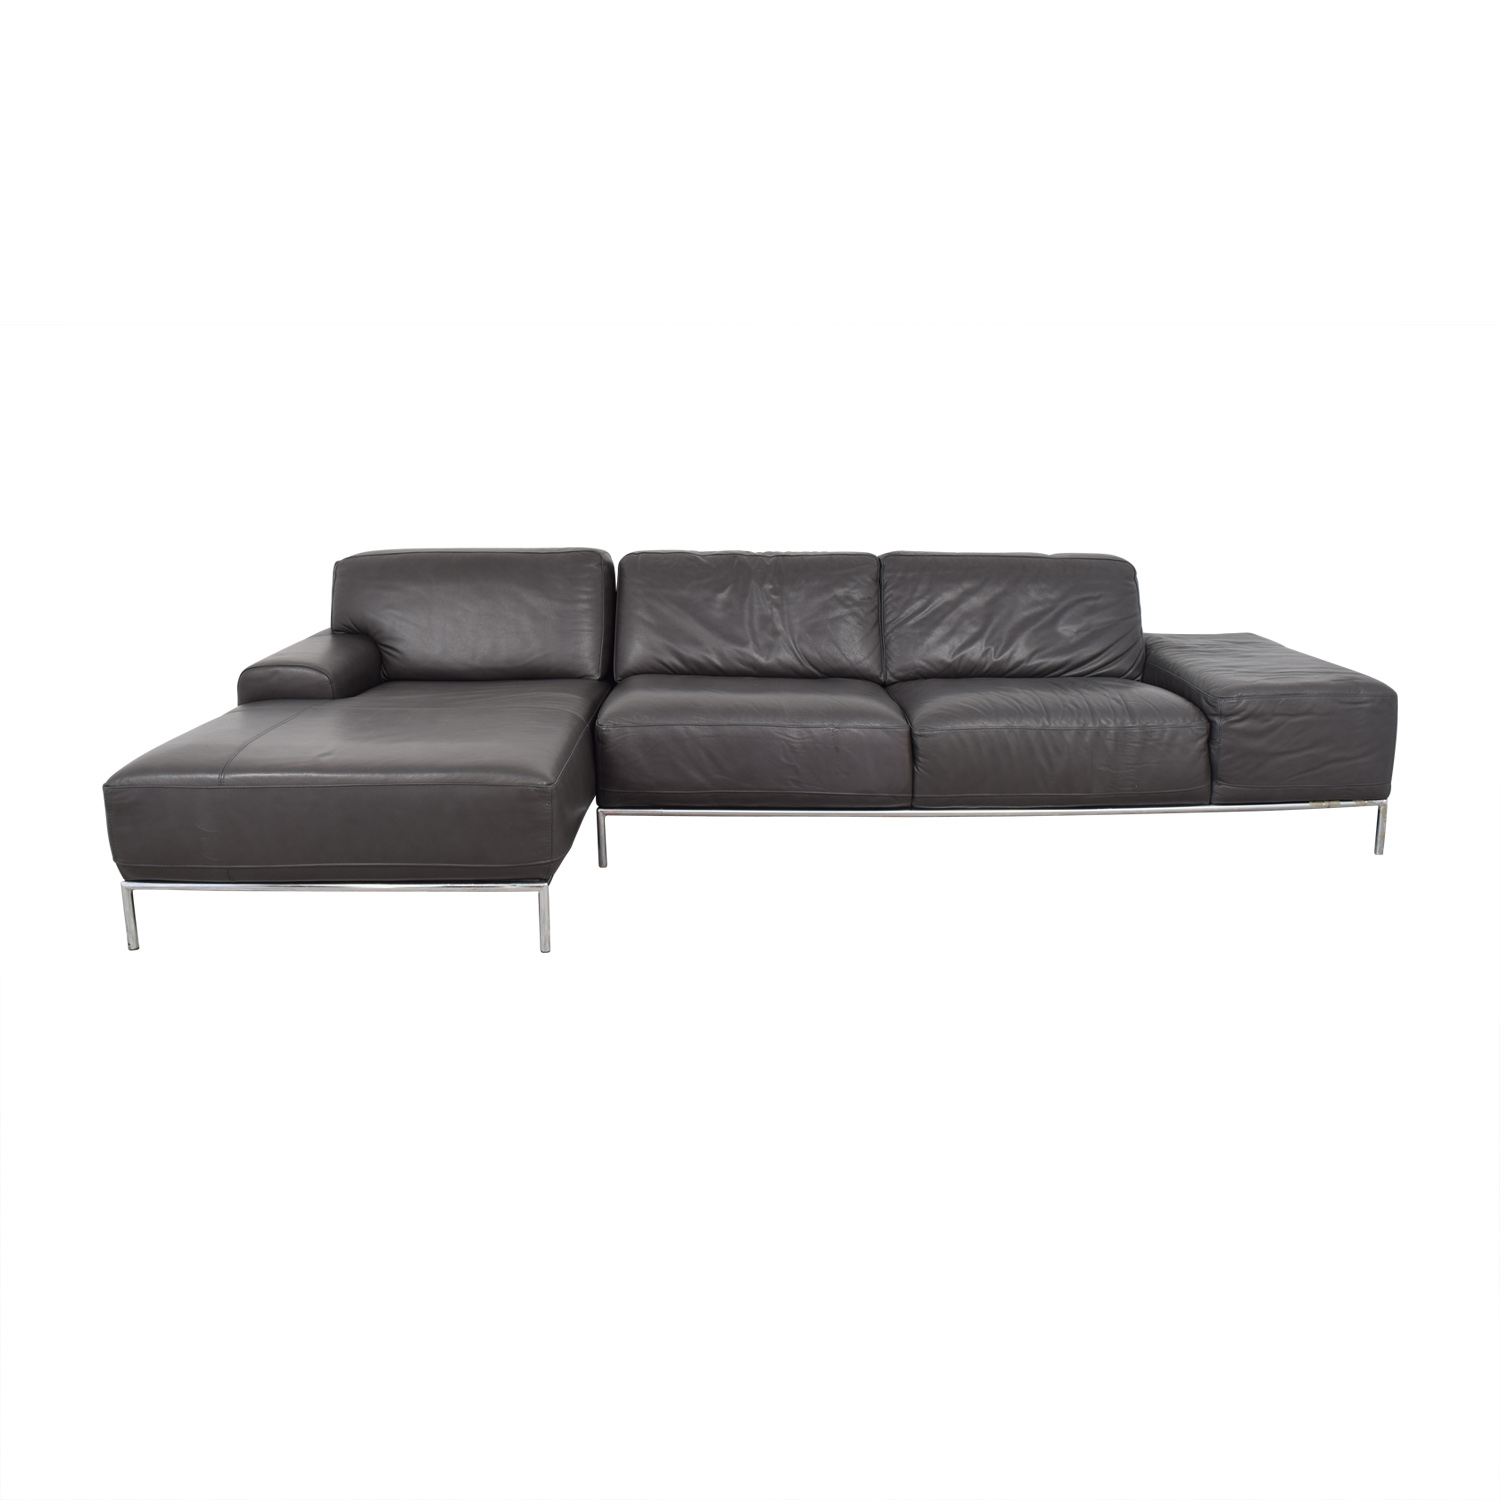 buy Chateau d'Ax Chateau d'Ax Grey Sectional online